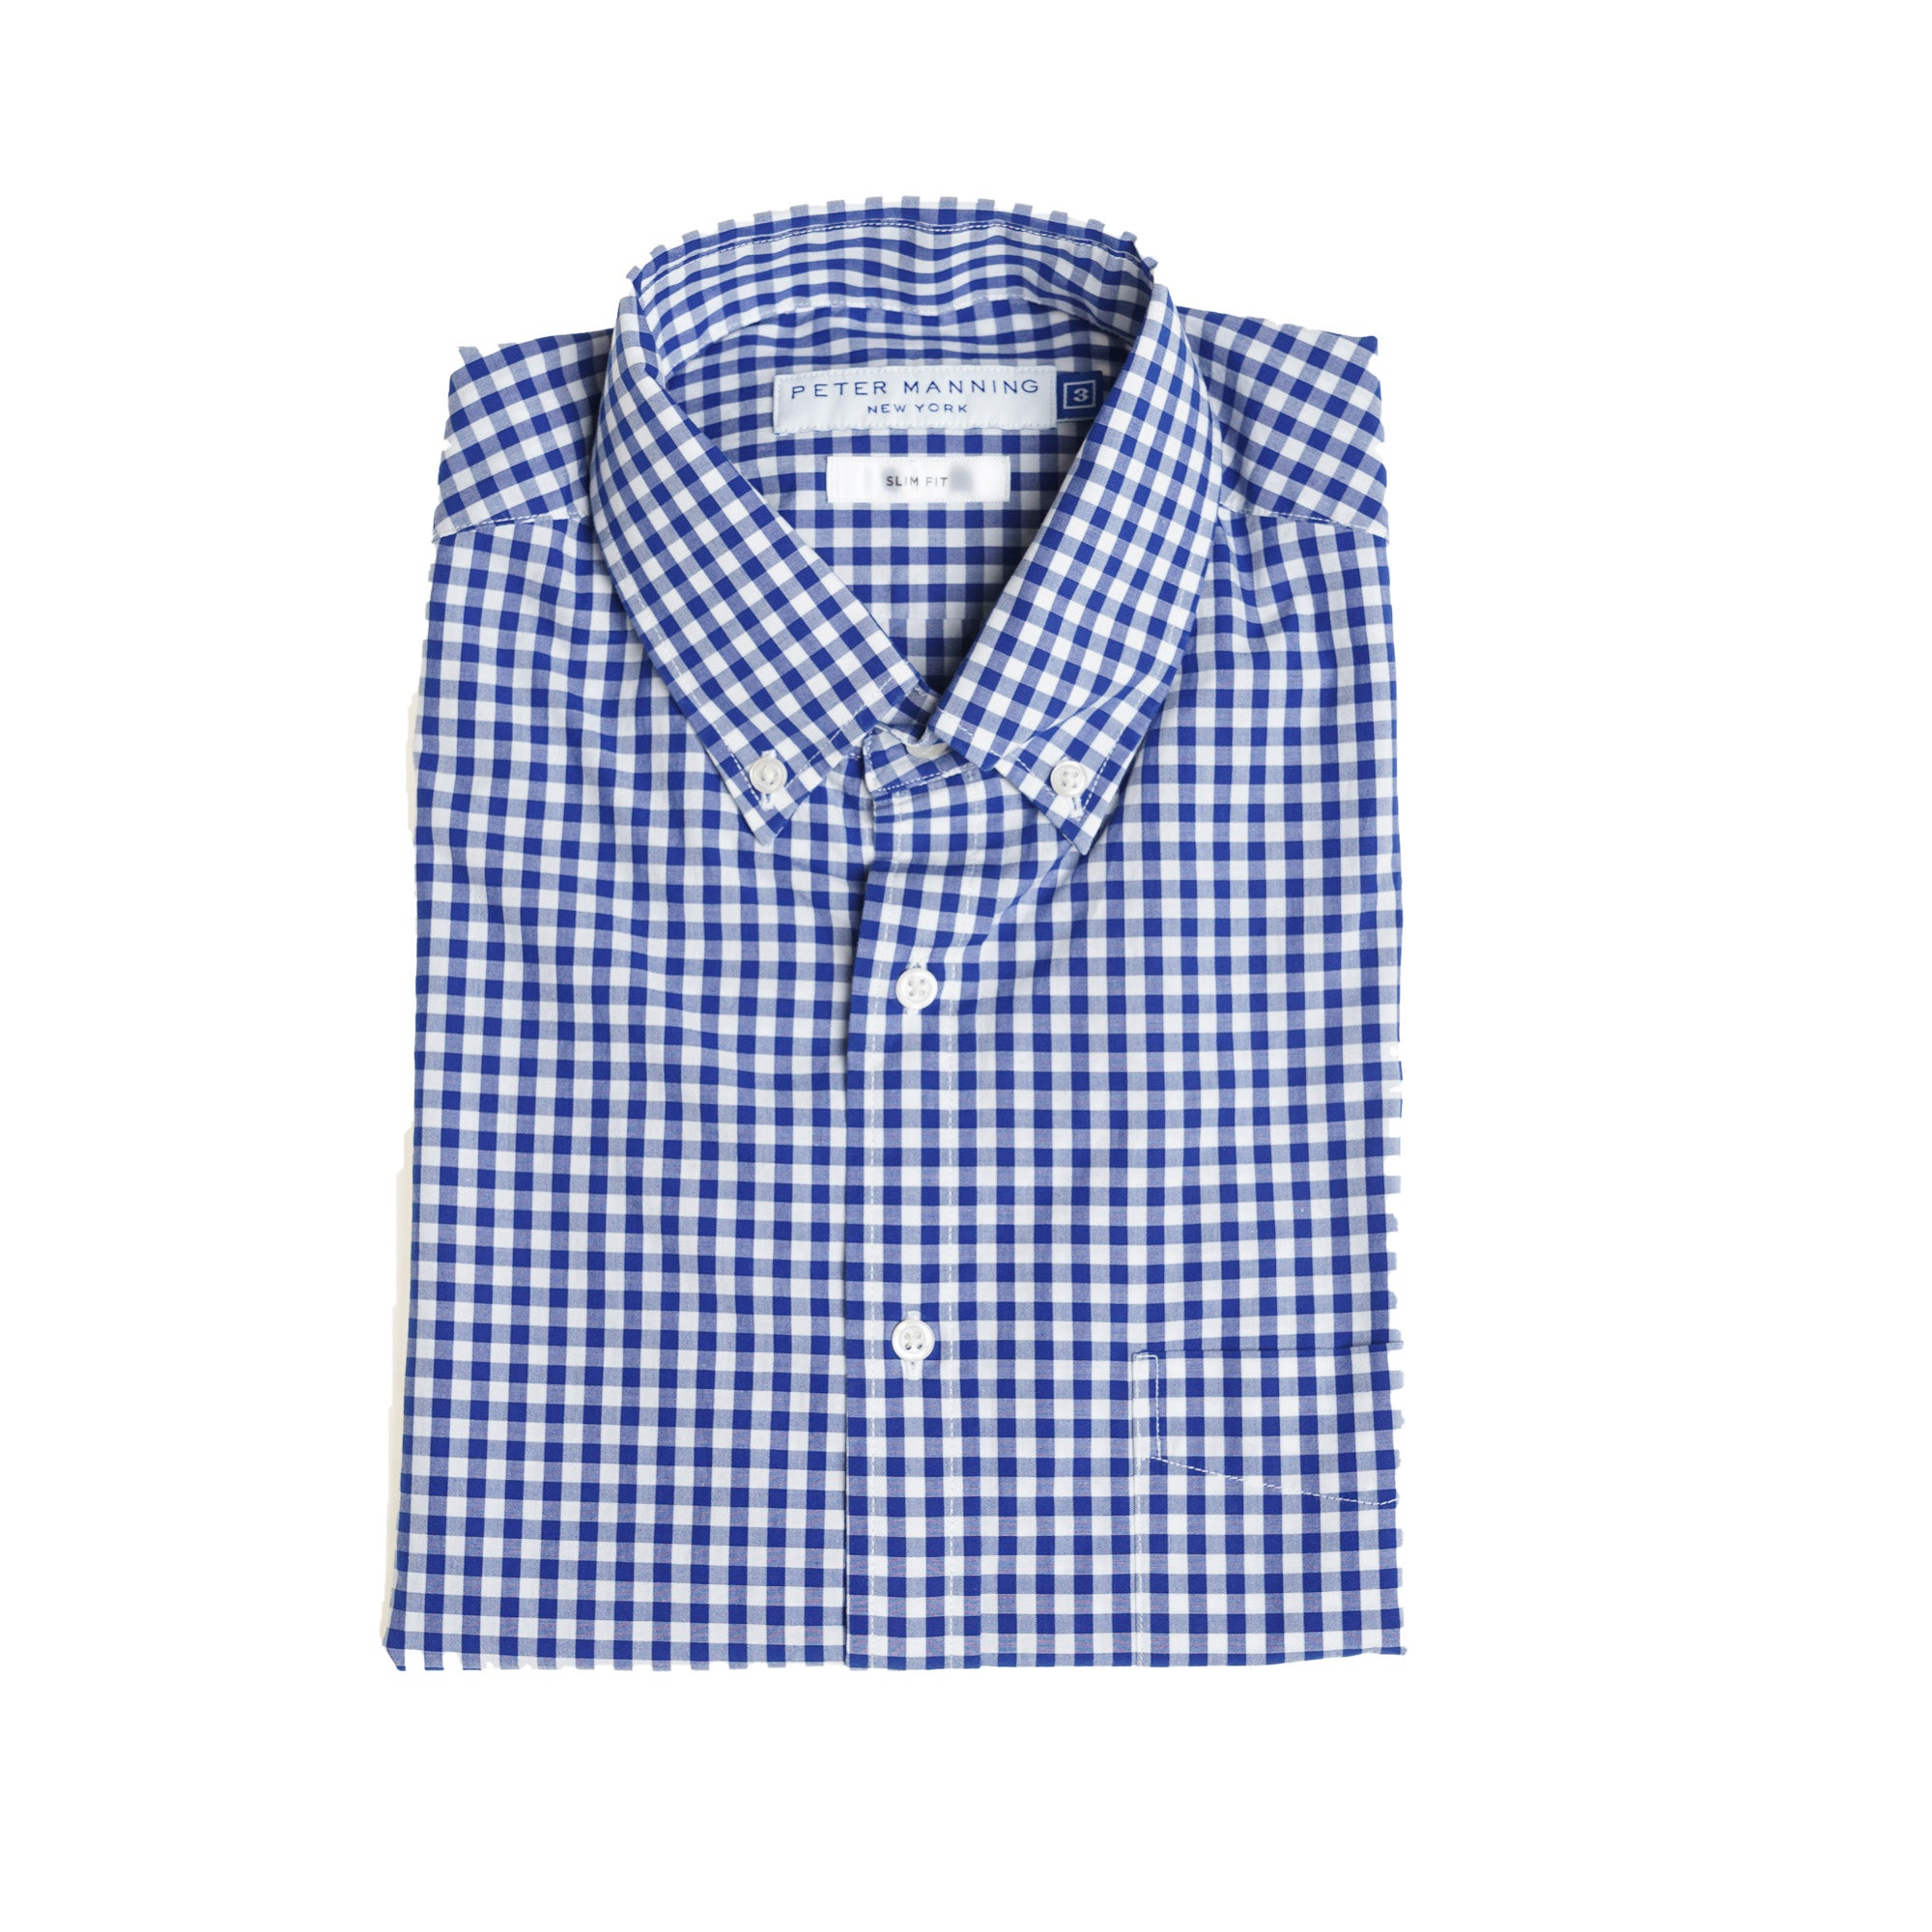 Everyday Shirts Slim Fit - Navy Gingham